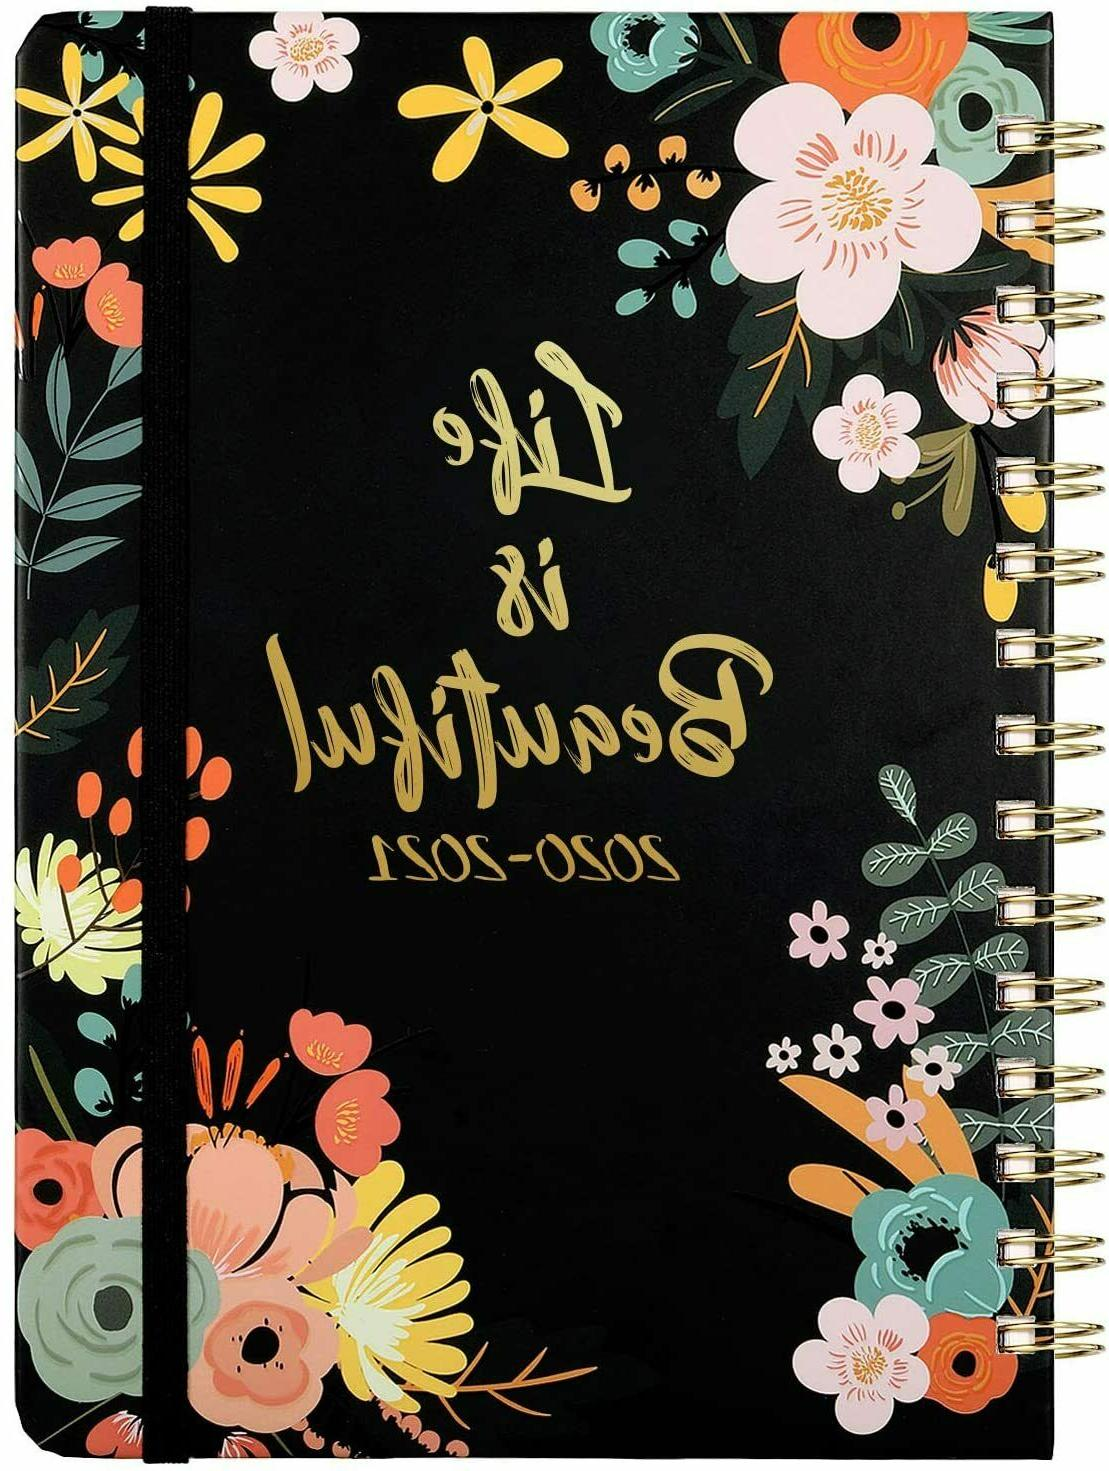 2020 2021 planner academic weekly monthly planner